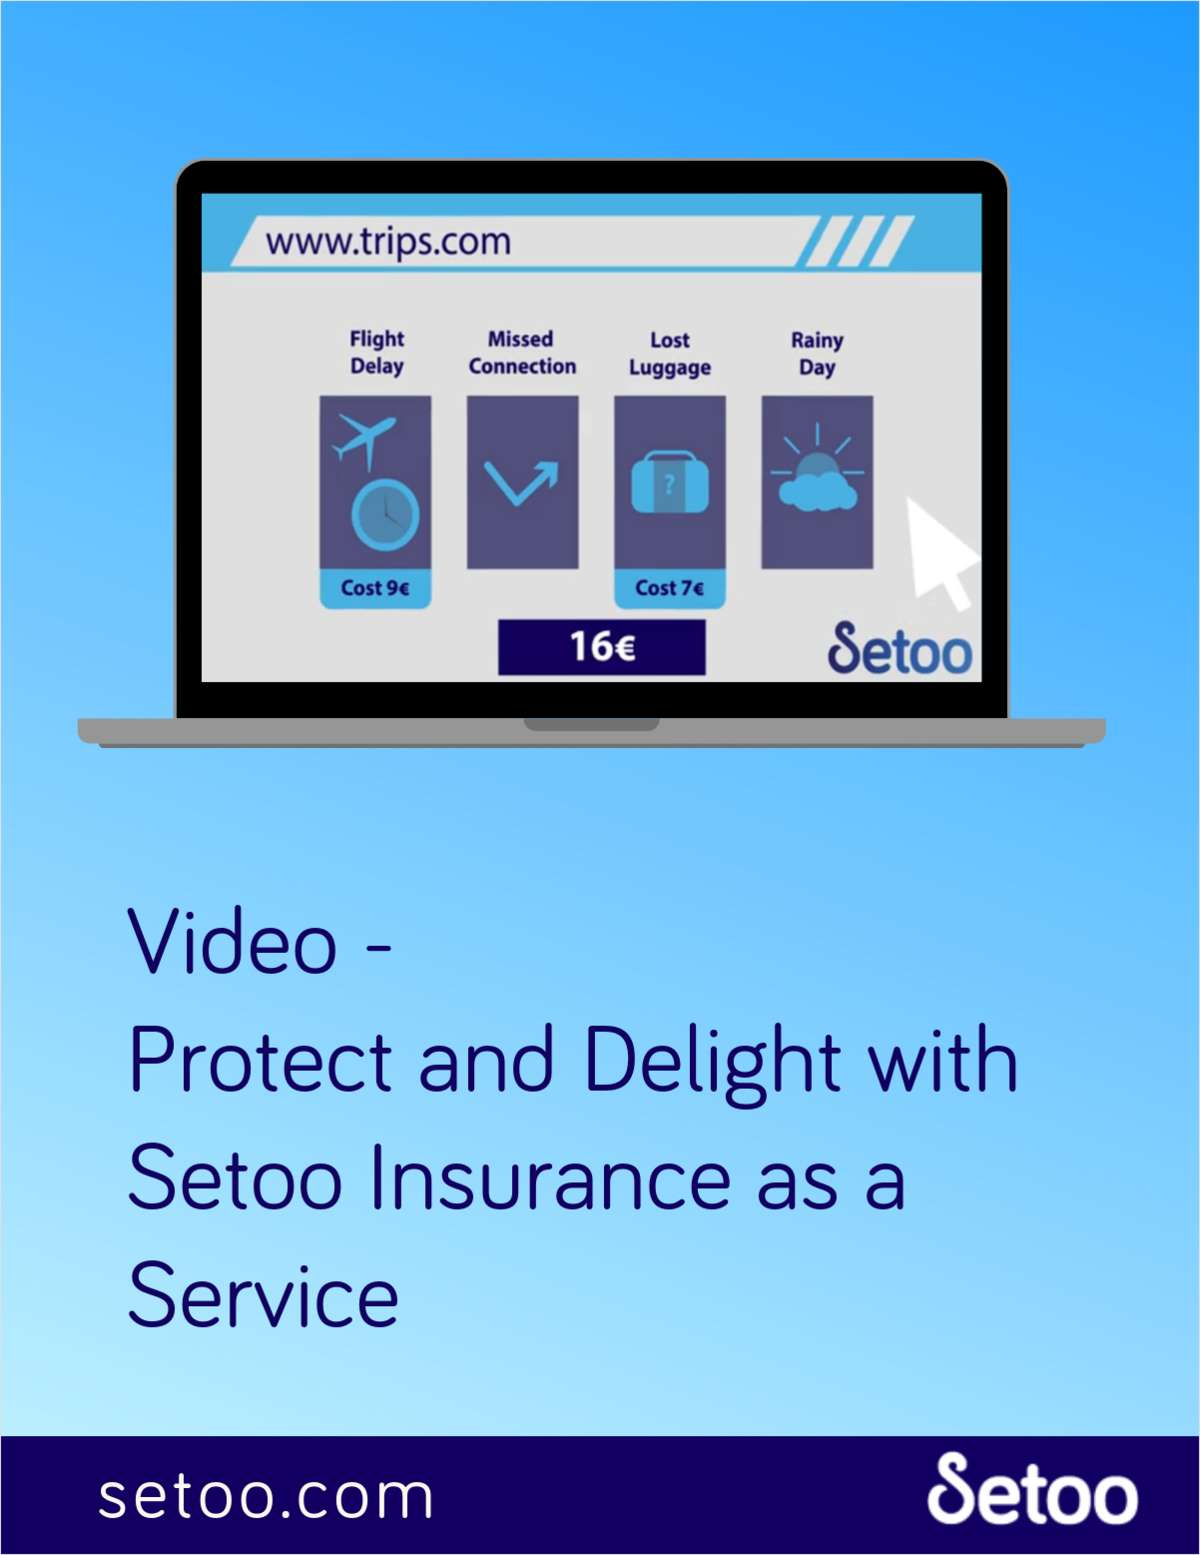 Protect and Delight with Setoo Insurance as a Service